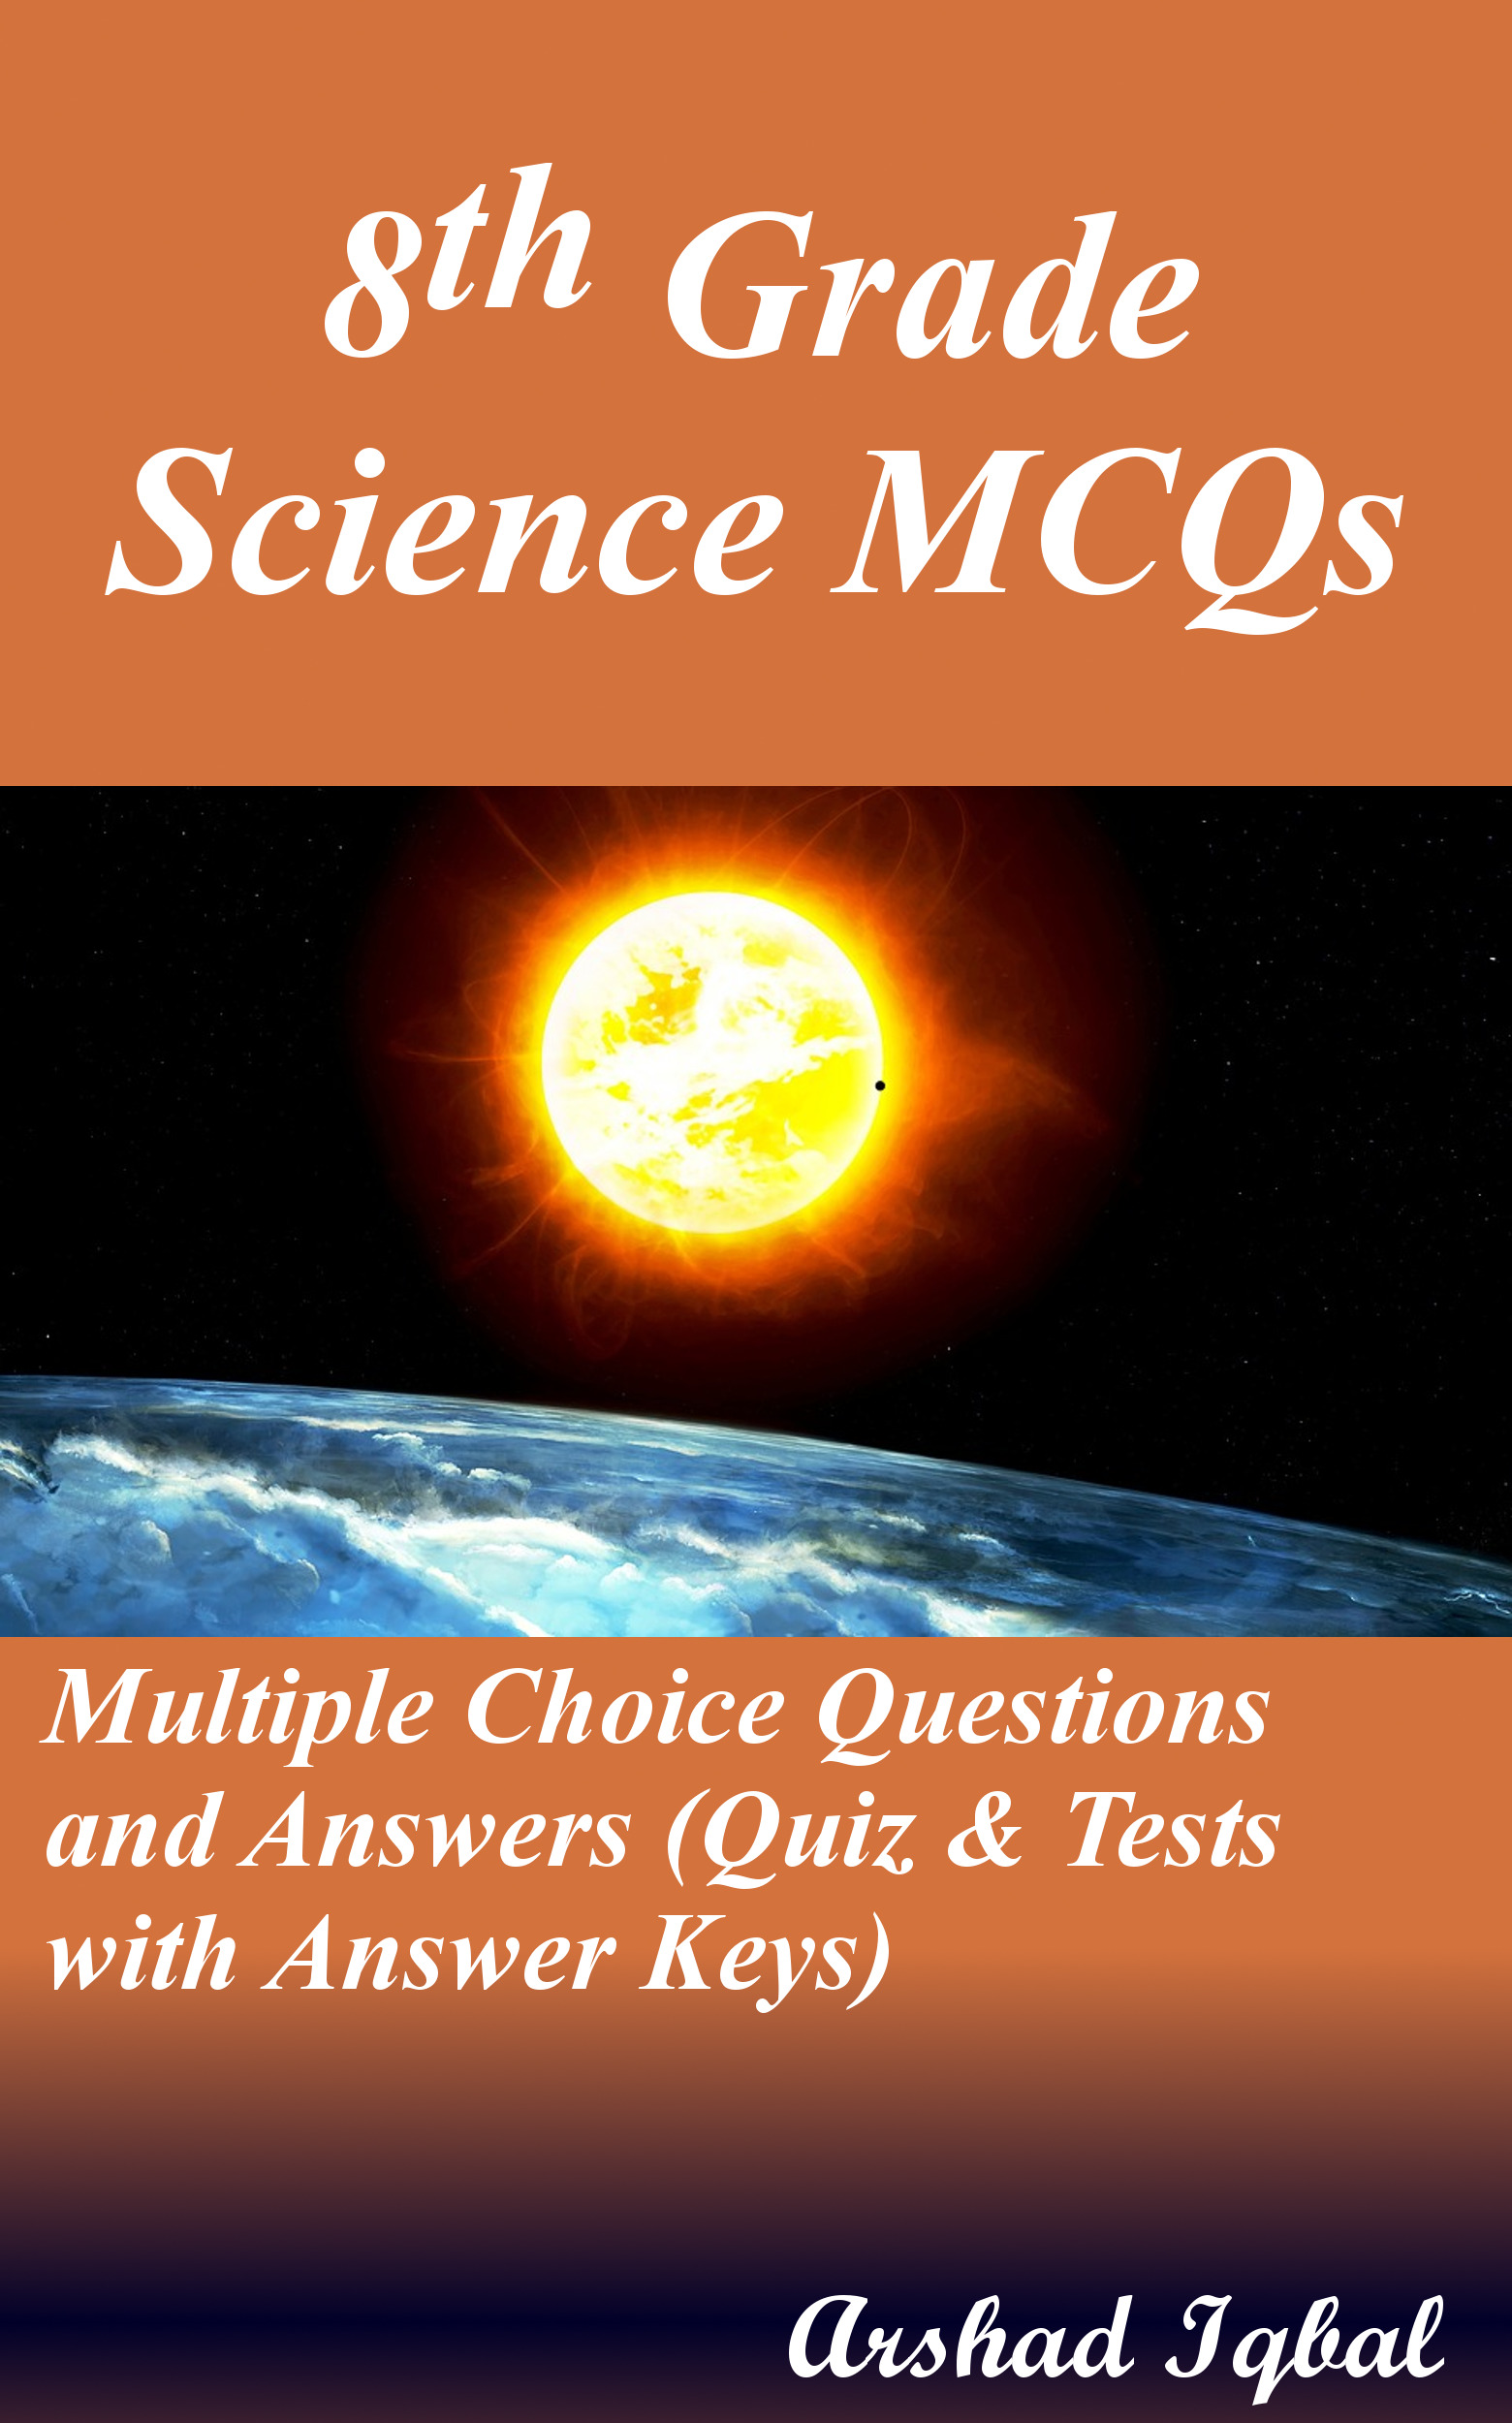 8th Grade Science MCQs: Multiple Choice Questions and Answers (Quiz & Tests  with Answer Keys), an Ebook by Arshad Iqbal